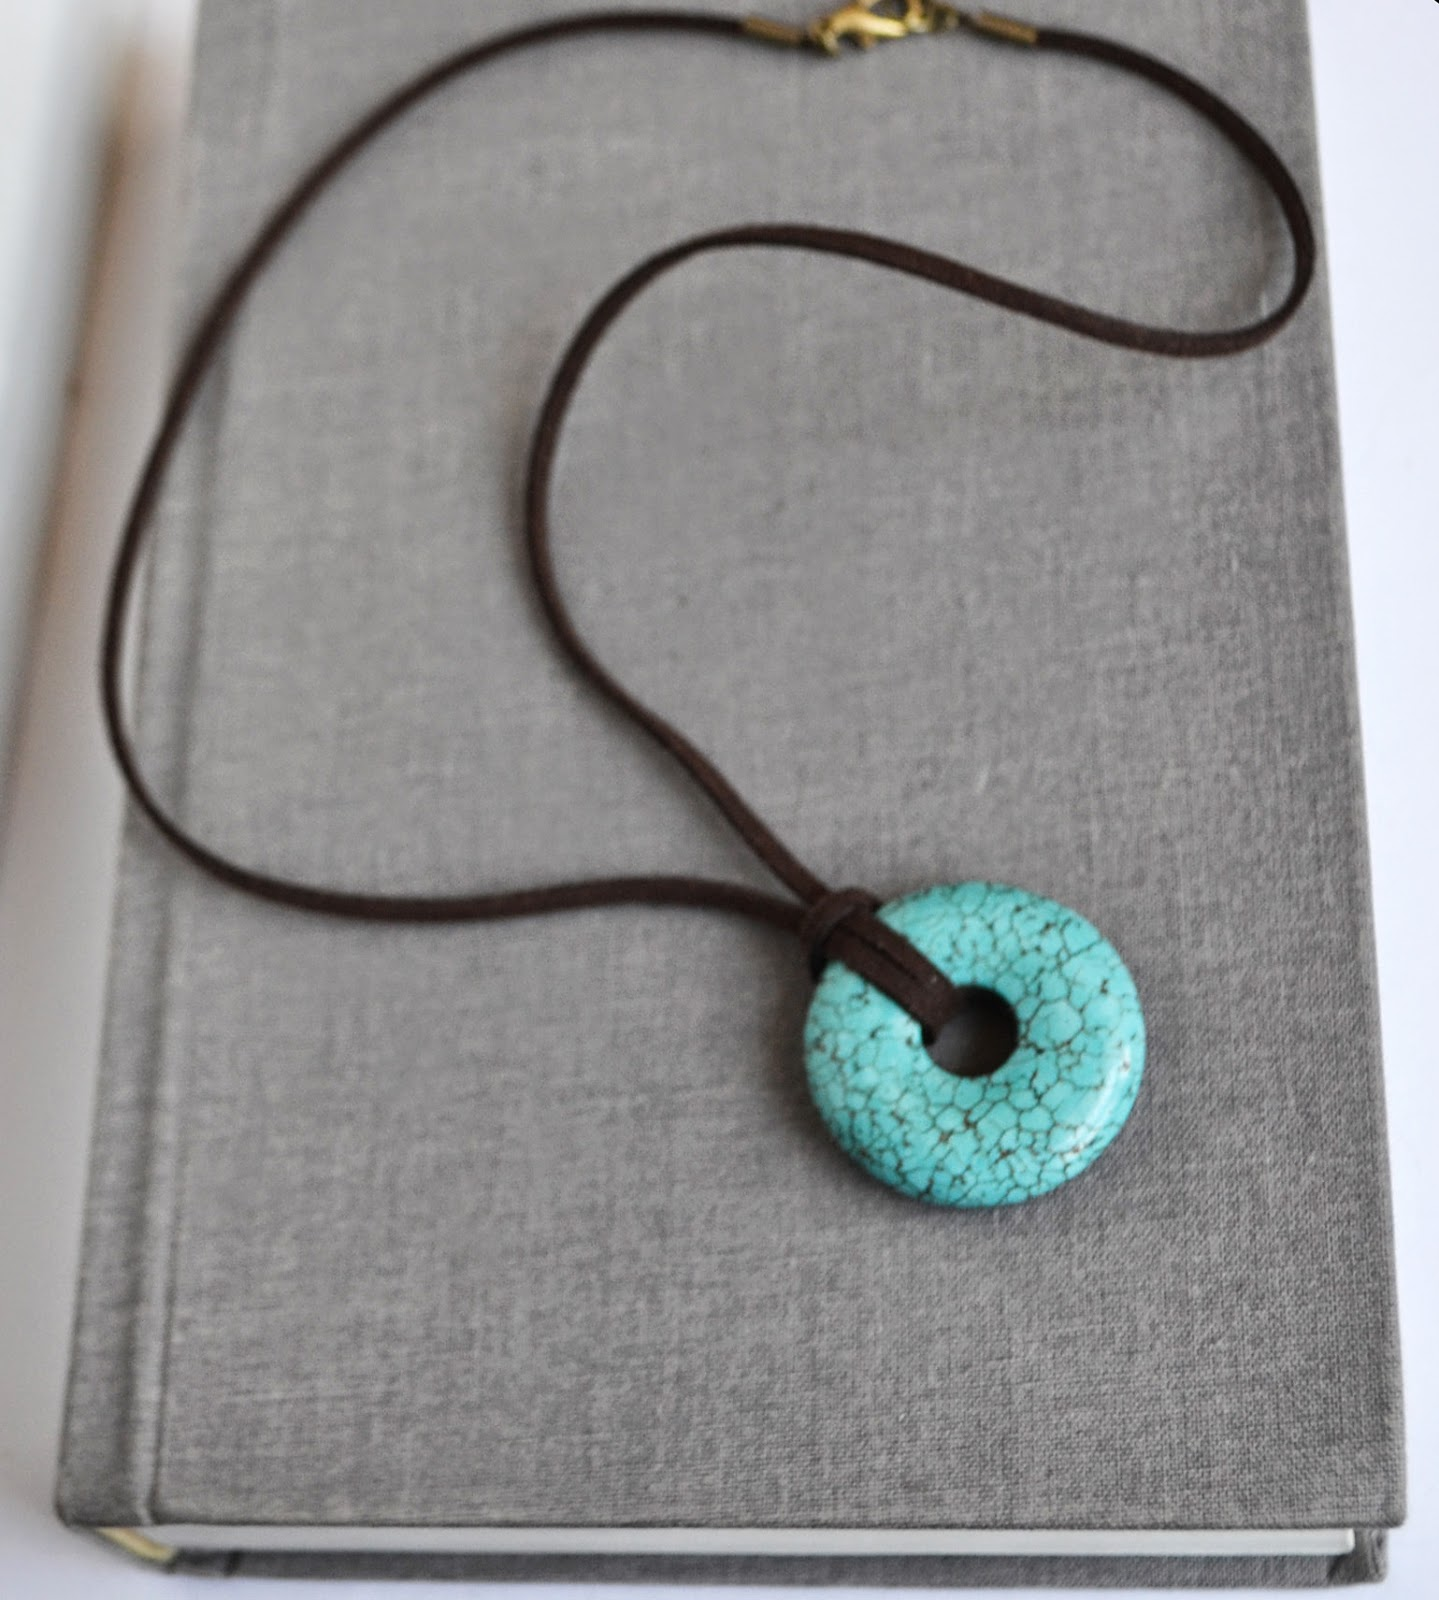 https://www.etsy.com/listing/99235483/turquoise-disk-necklace-disk-turquoise?ref=shop_home_active_3